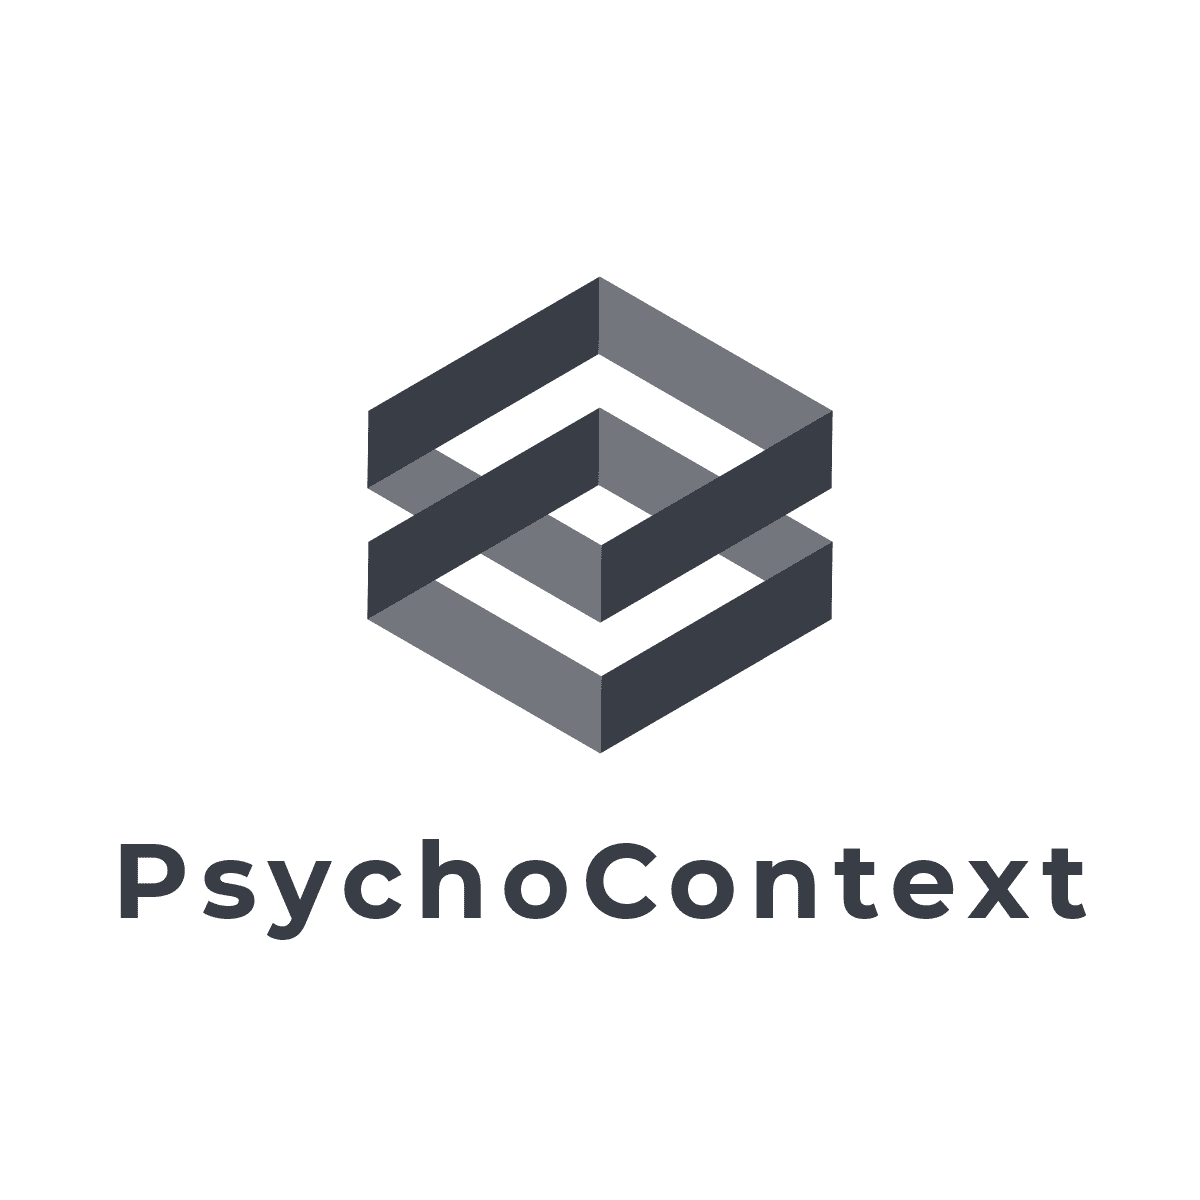 PsychoContext